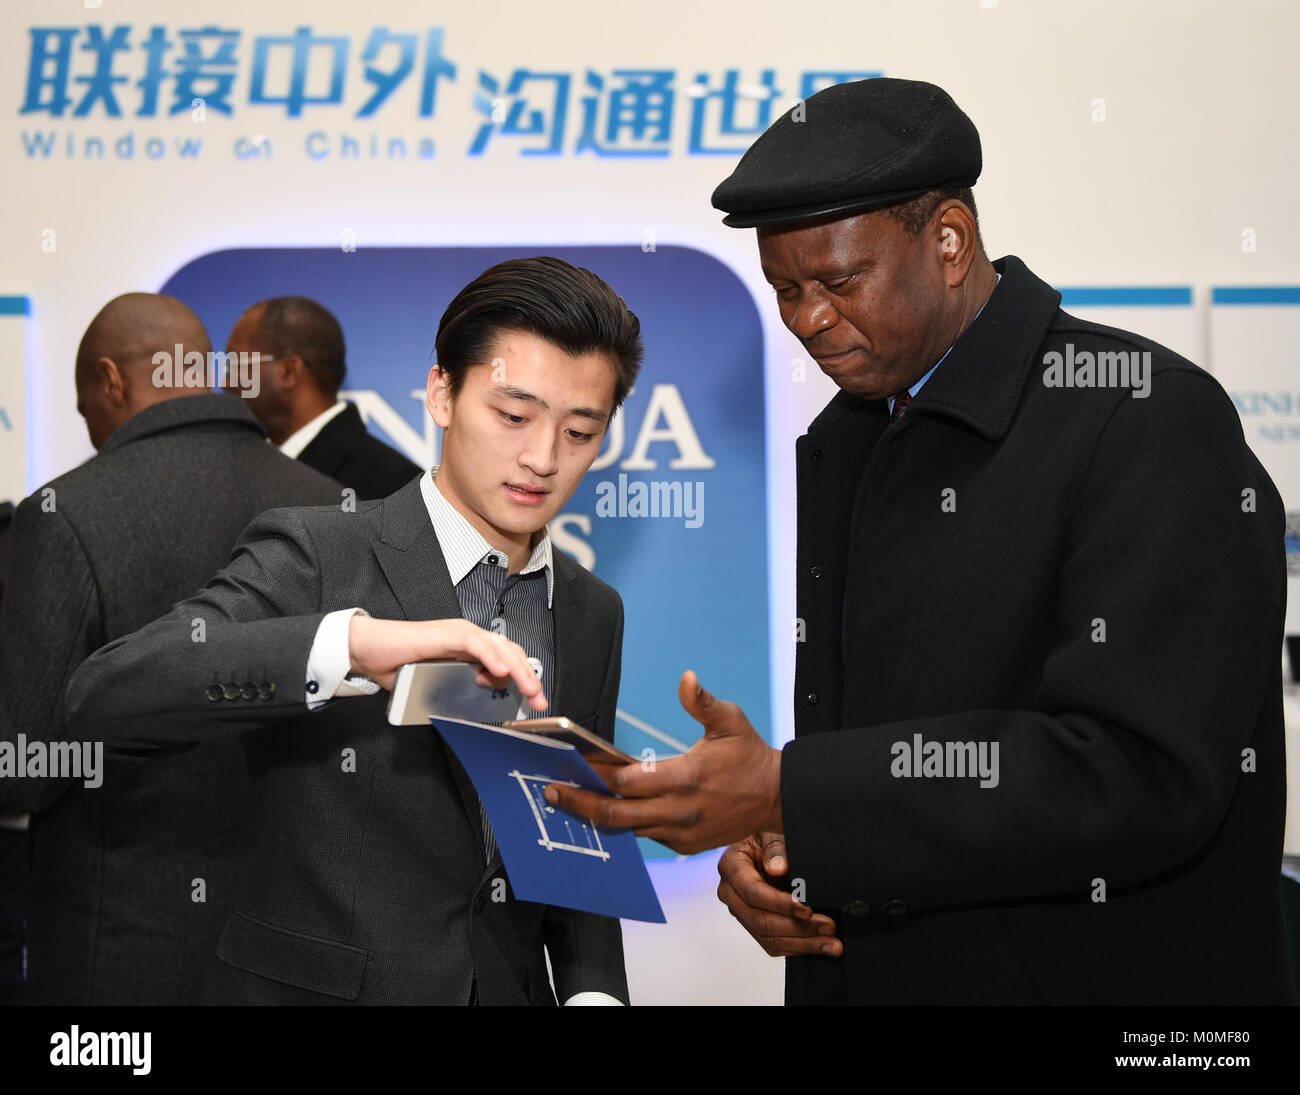 (180123) -- BEIJING, Jan. 23, 2018 (Xinhua) -- A staff member shows the Xinhua News App to a foreign guest, in Beijing, Stock Photo